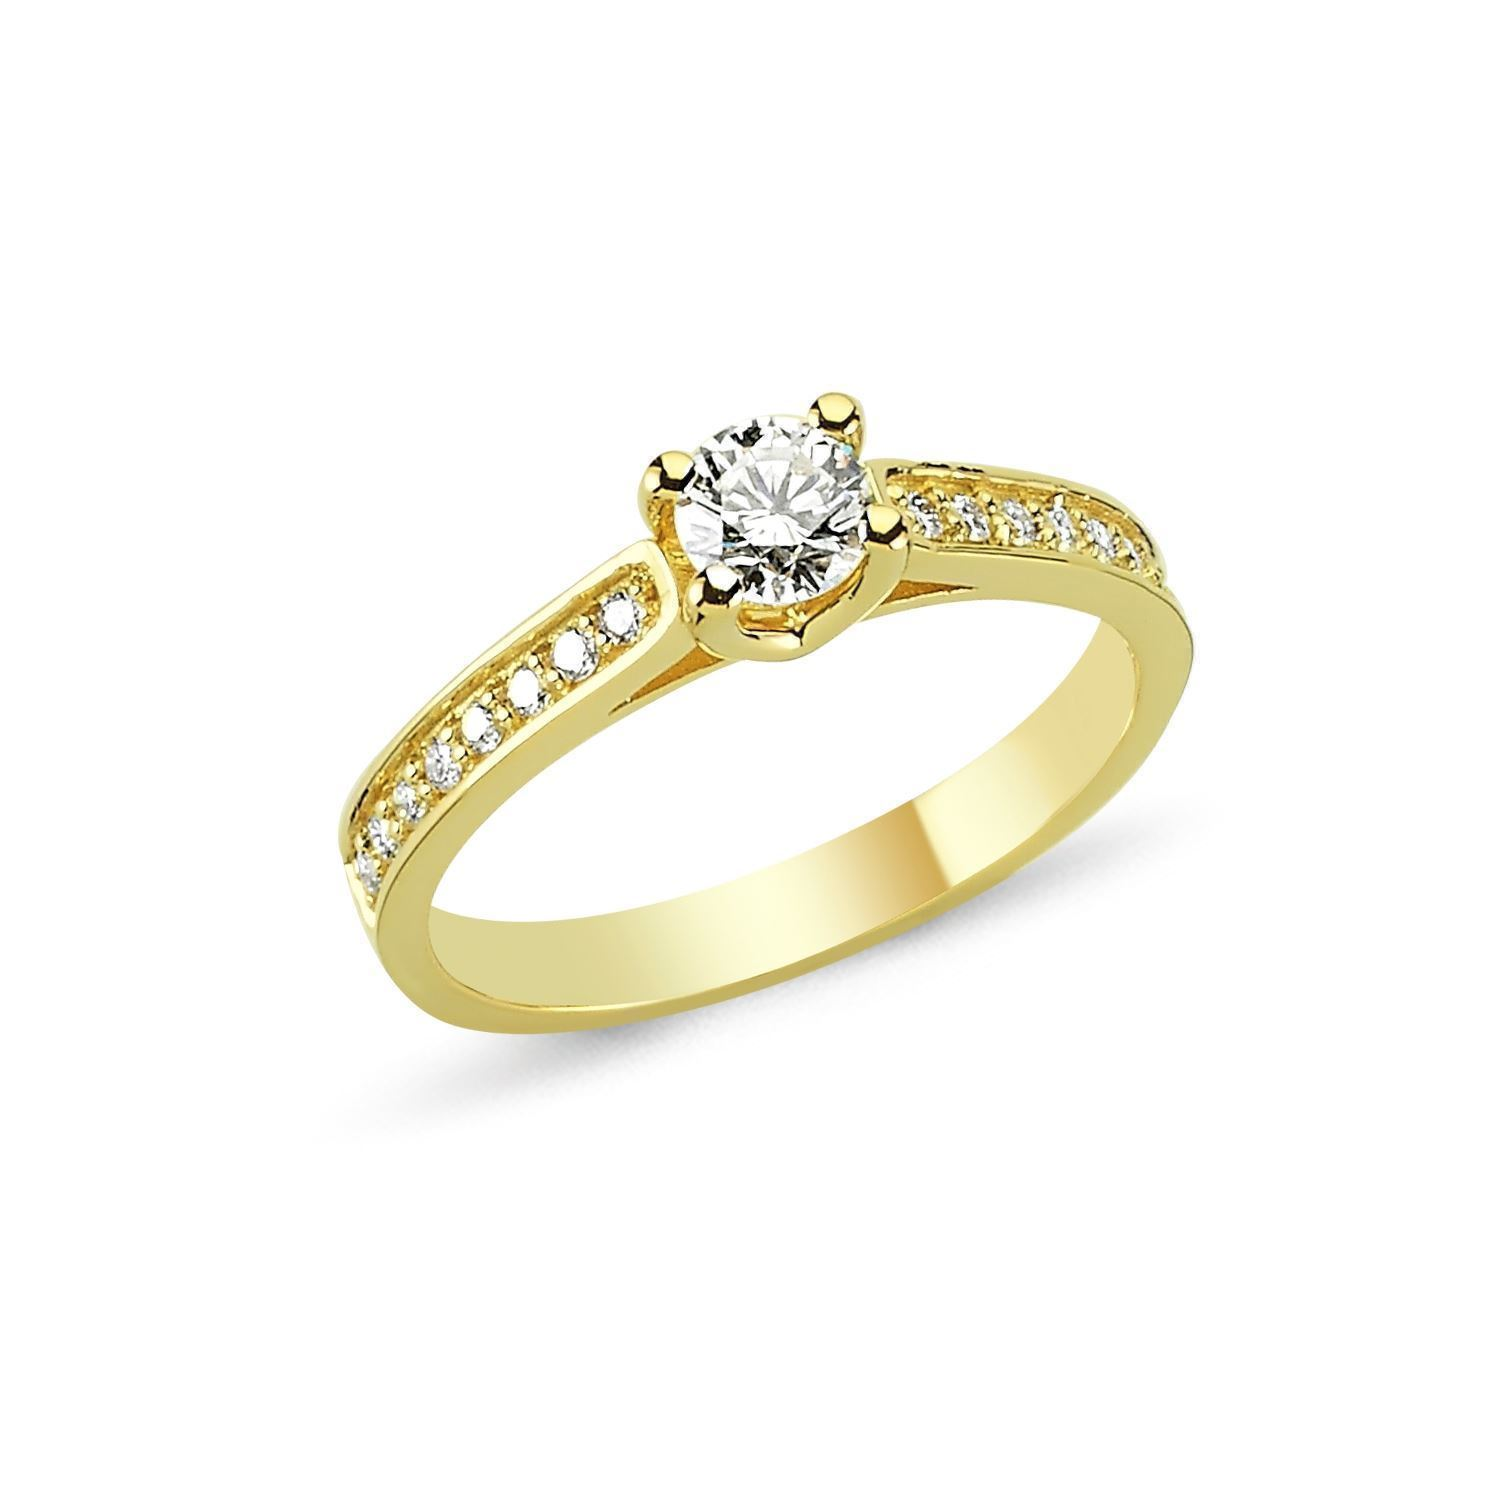 Nuran Bella solitaire ring i 14 karat guld med 0,15 - 0,43 ct diamanter